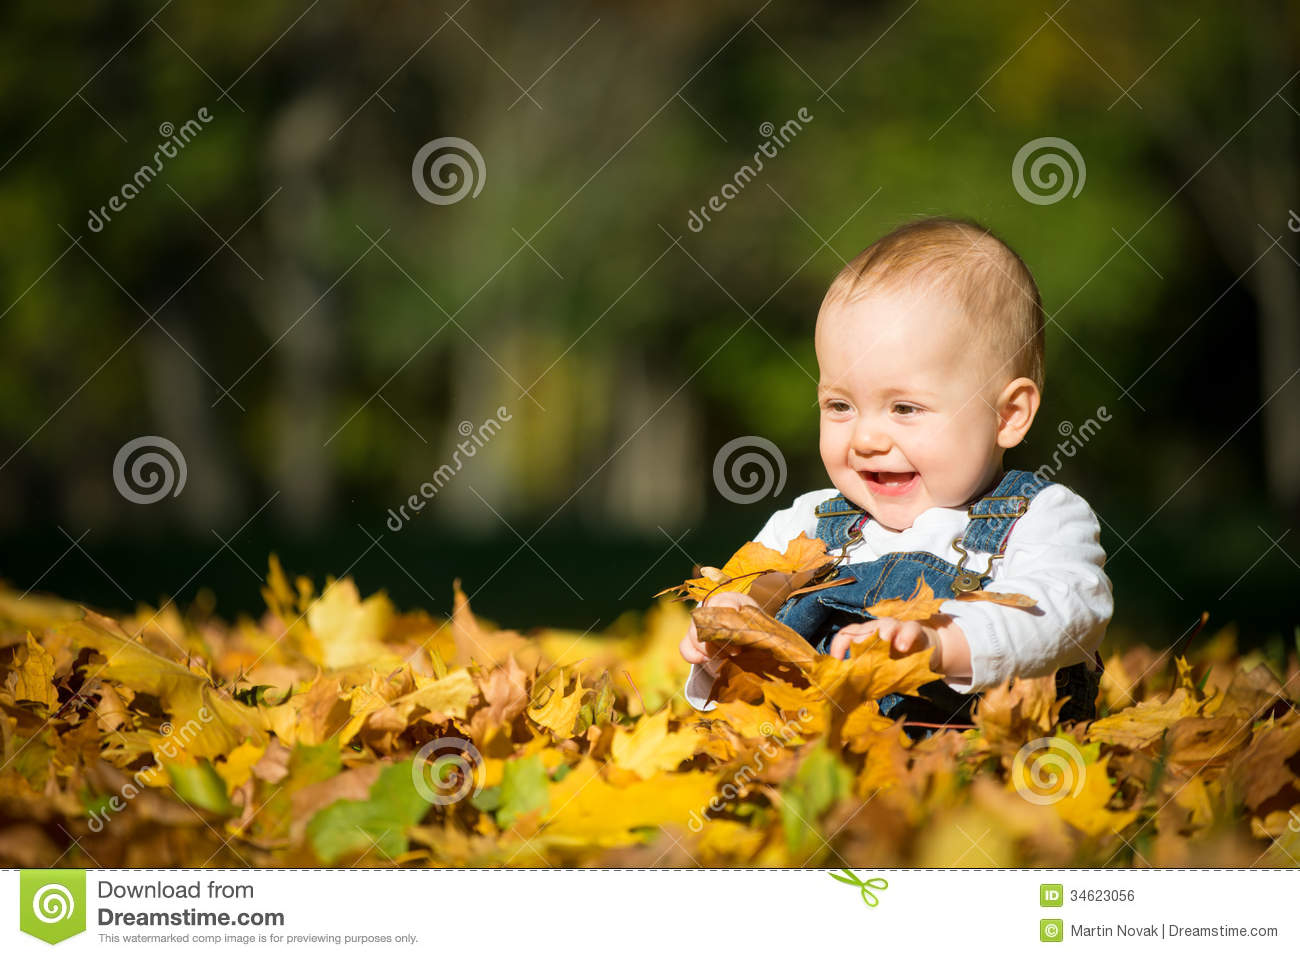 Wallpaper Cowboy Girl Happiness Baby In Nature Royalty Free Stock Image